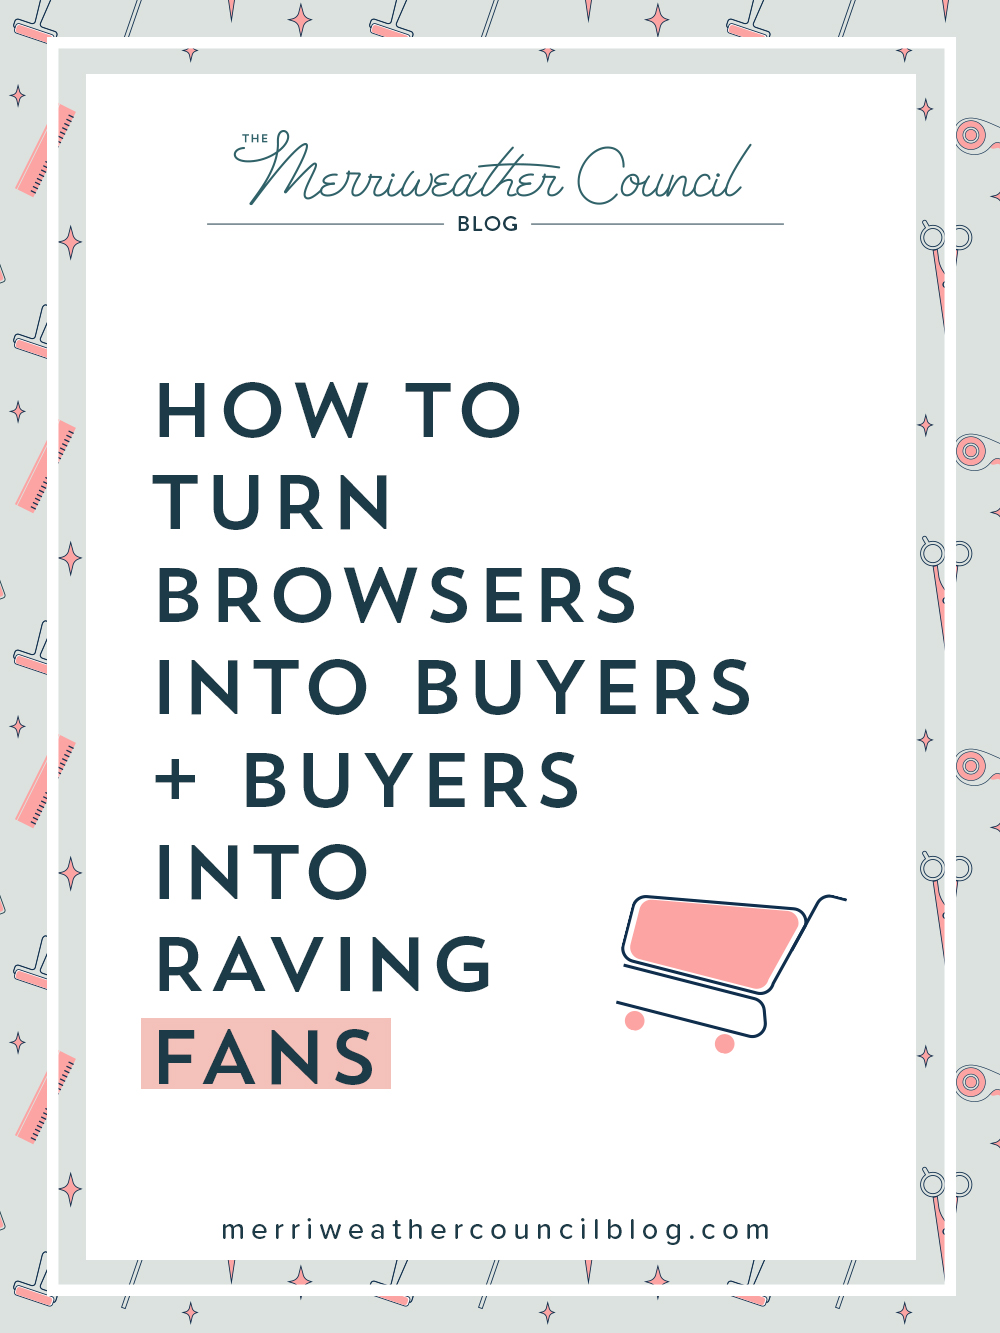 How to Turn Browsers Into Buyers + Buyers Into Raving Fans | The Merriweather Council Blog